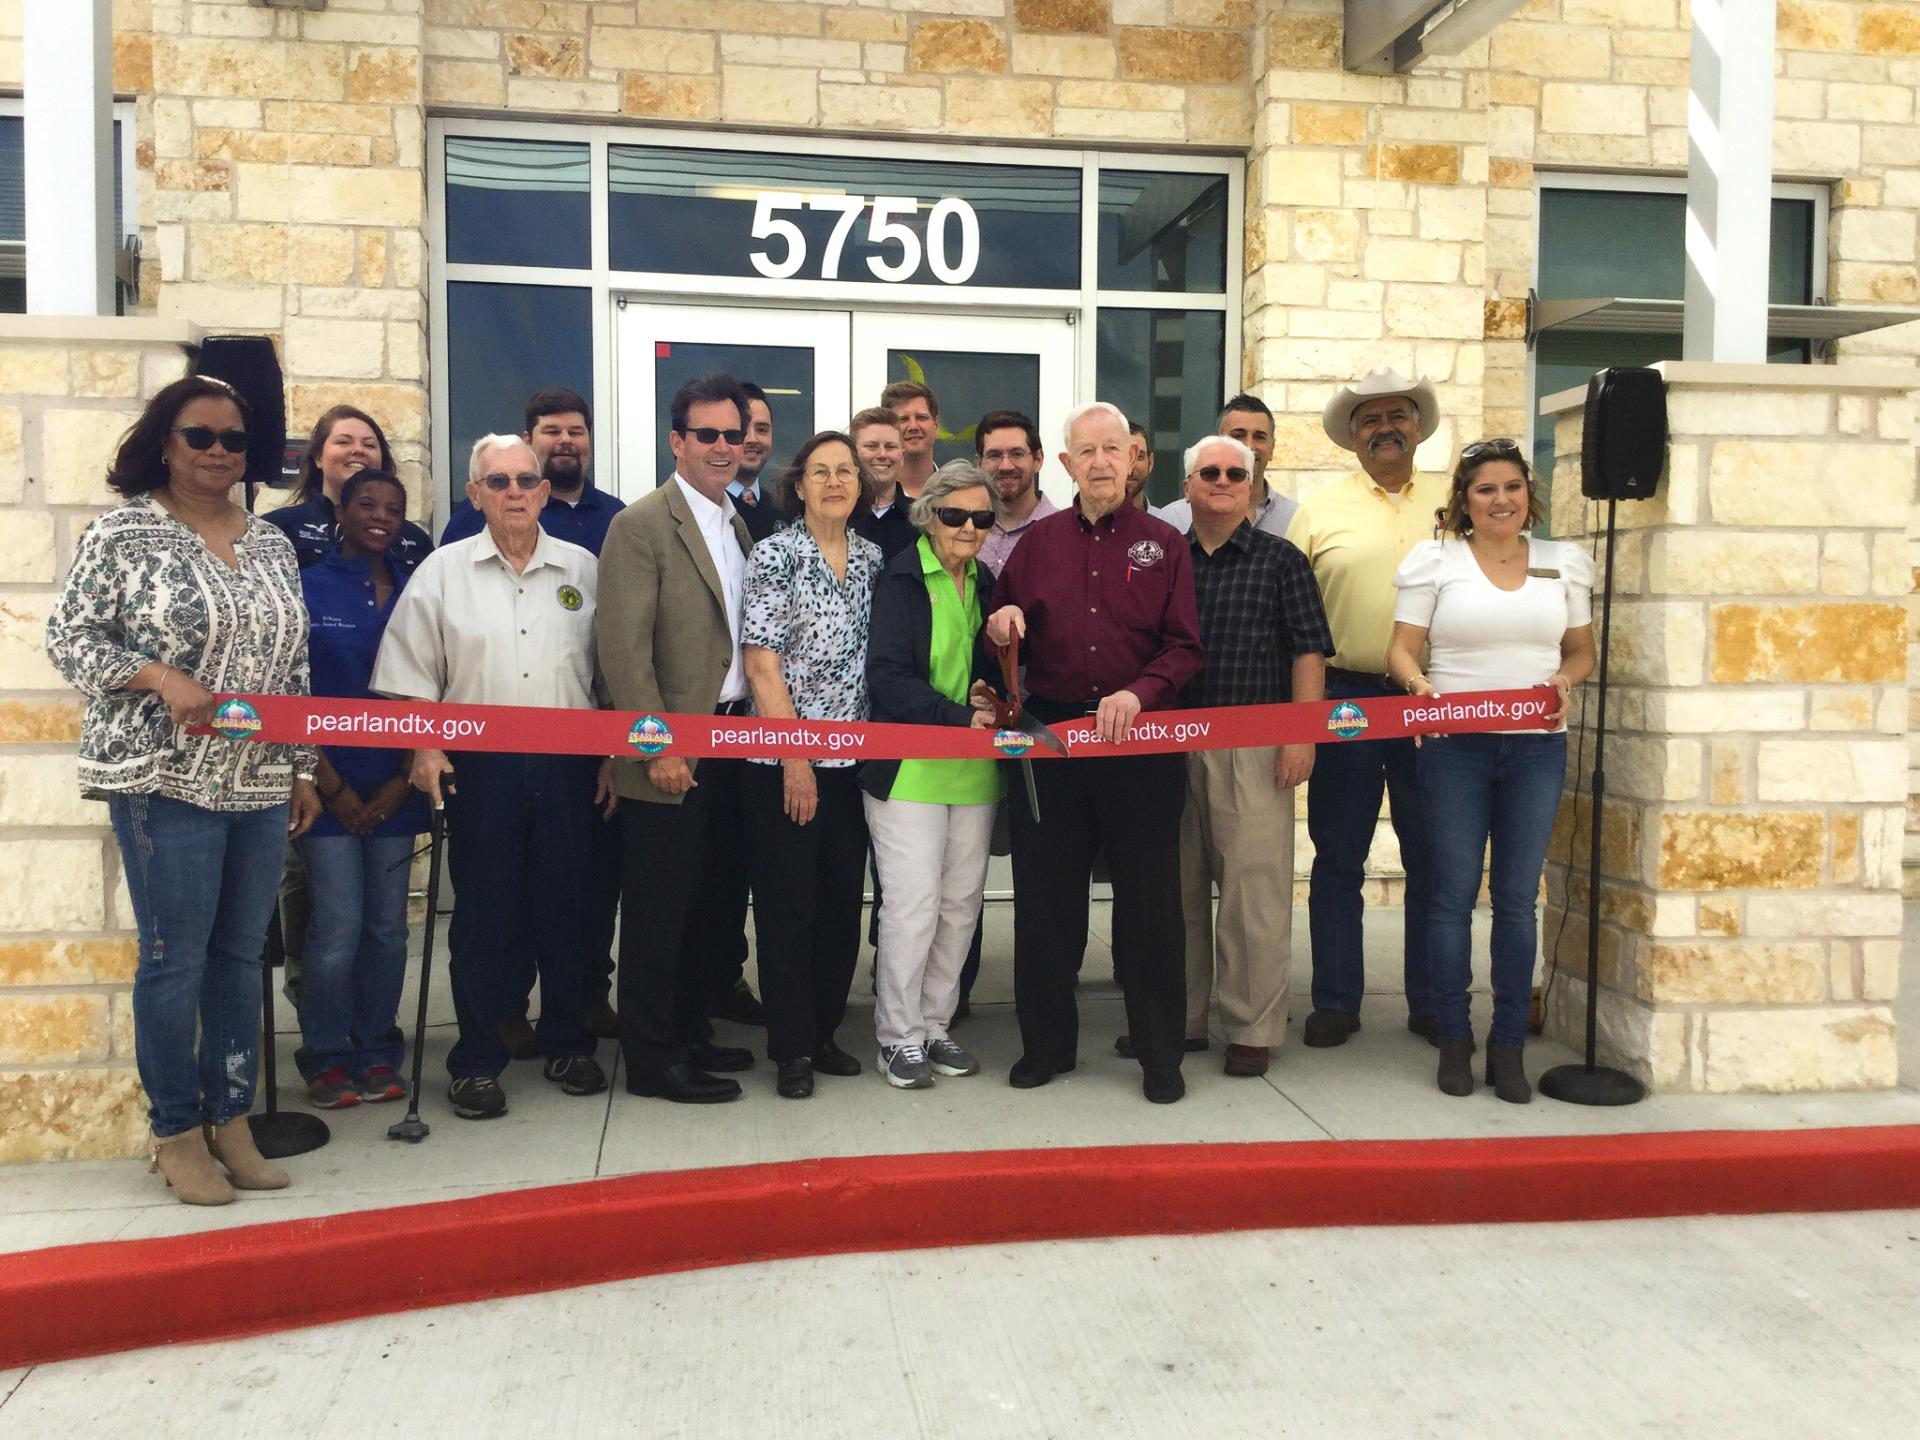 Pearland Launches New Nature Center with Grand Opening Event